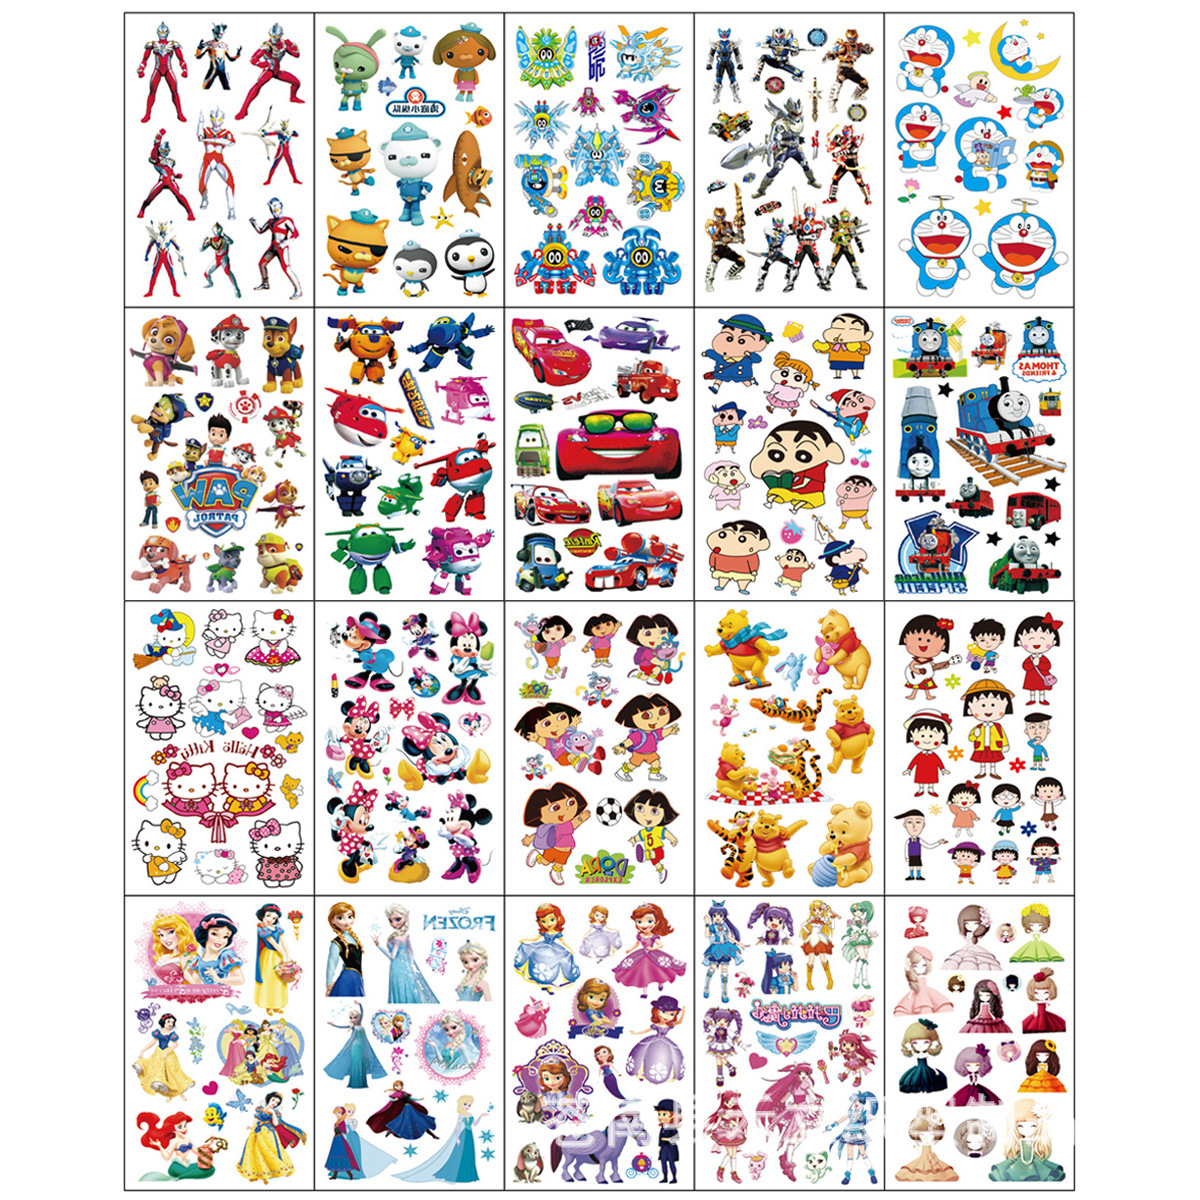 20pcs/set Fake Tattoo Waterproof Cartoon Temporary Tattoo Sticker Kids Tattoo Body Art Tatouage Enfant